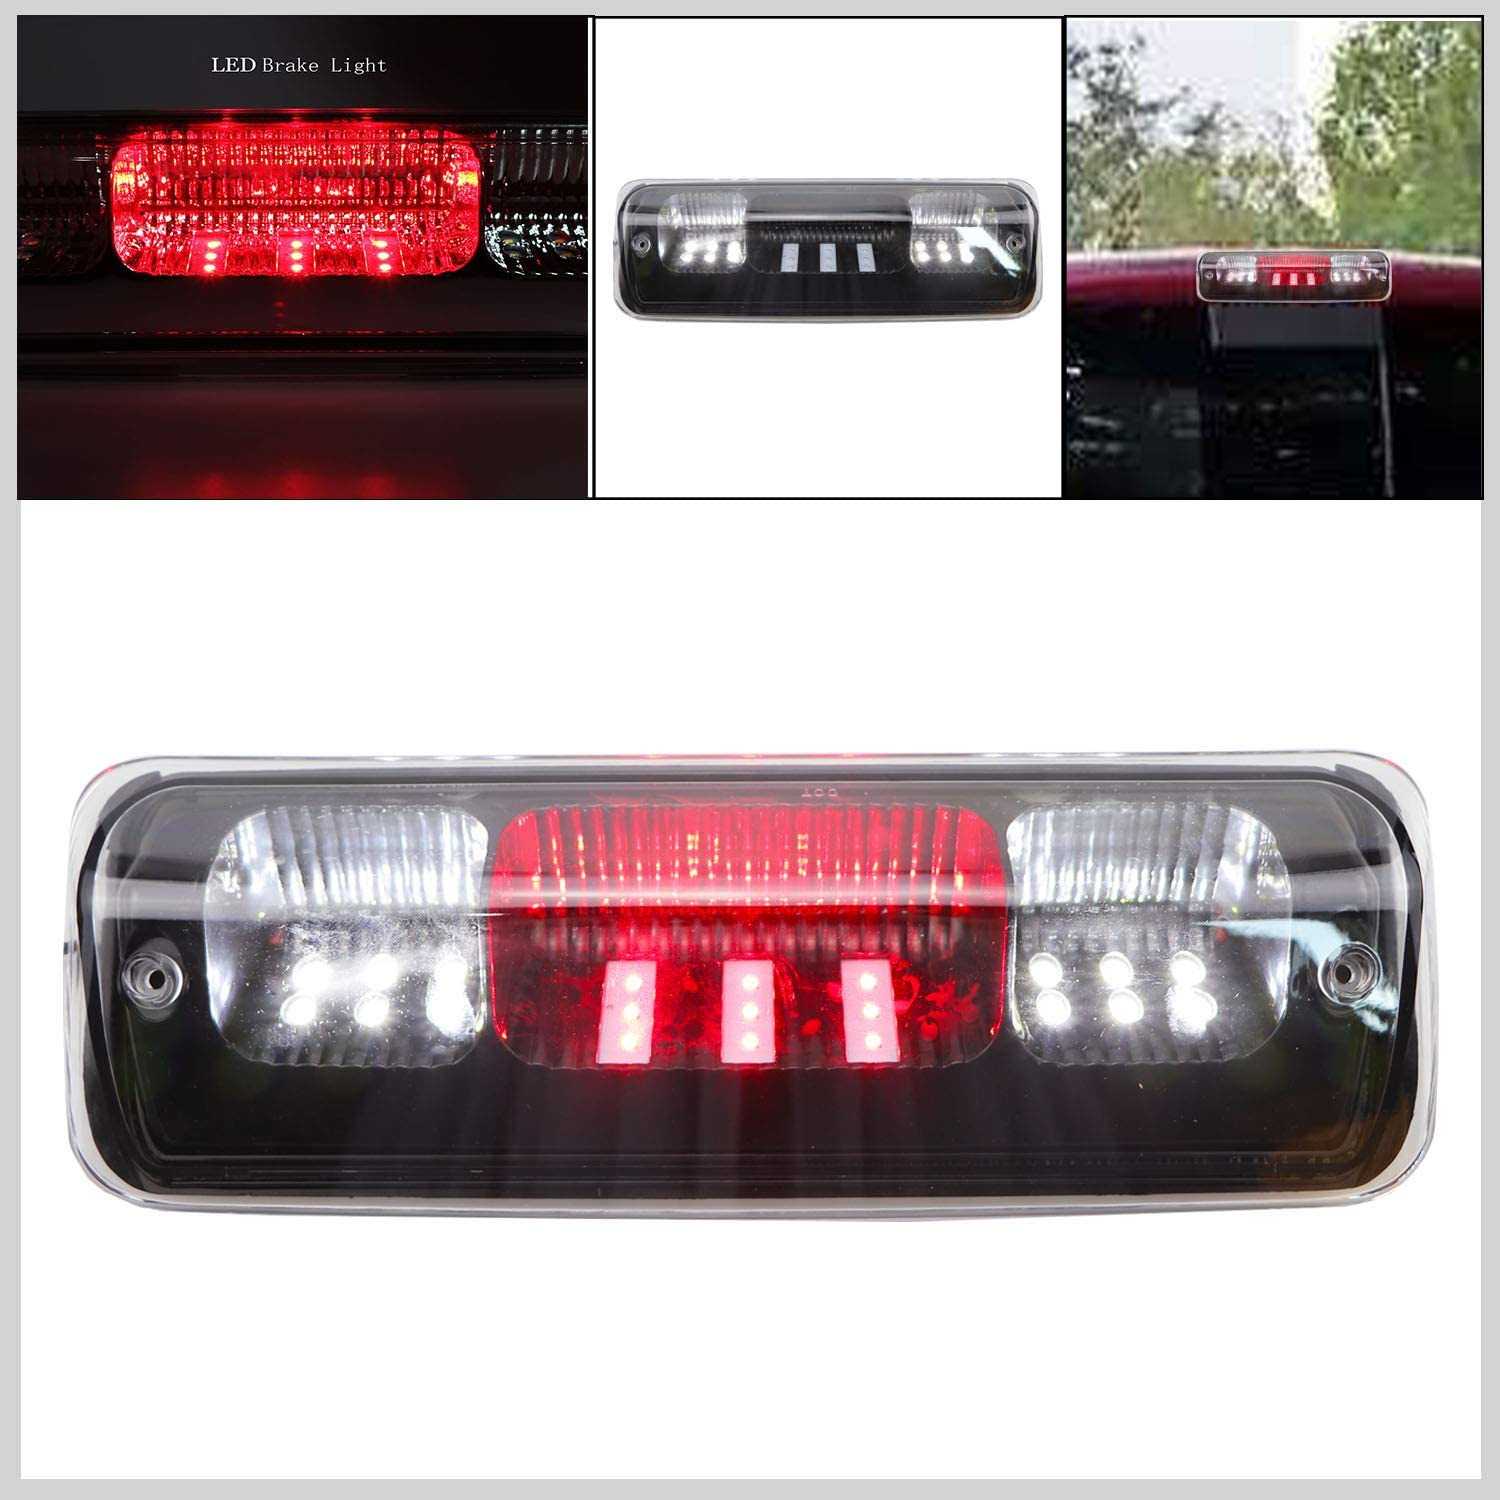 2006-2008 Lincoln Mark LT Black Housing Clear Lens 2007-2010 Ford Explorer Sport Trac Youxmoto 3rd Brake Lights Rear Cab Roof Center High Mount Cargo Tail Lamp for 2004-2008 Ford F-150